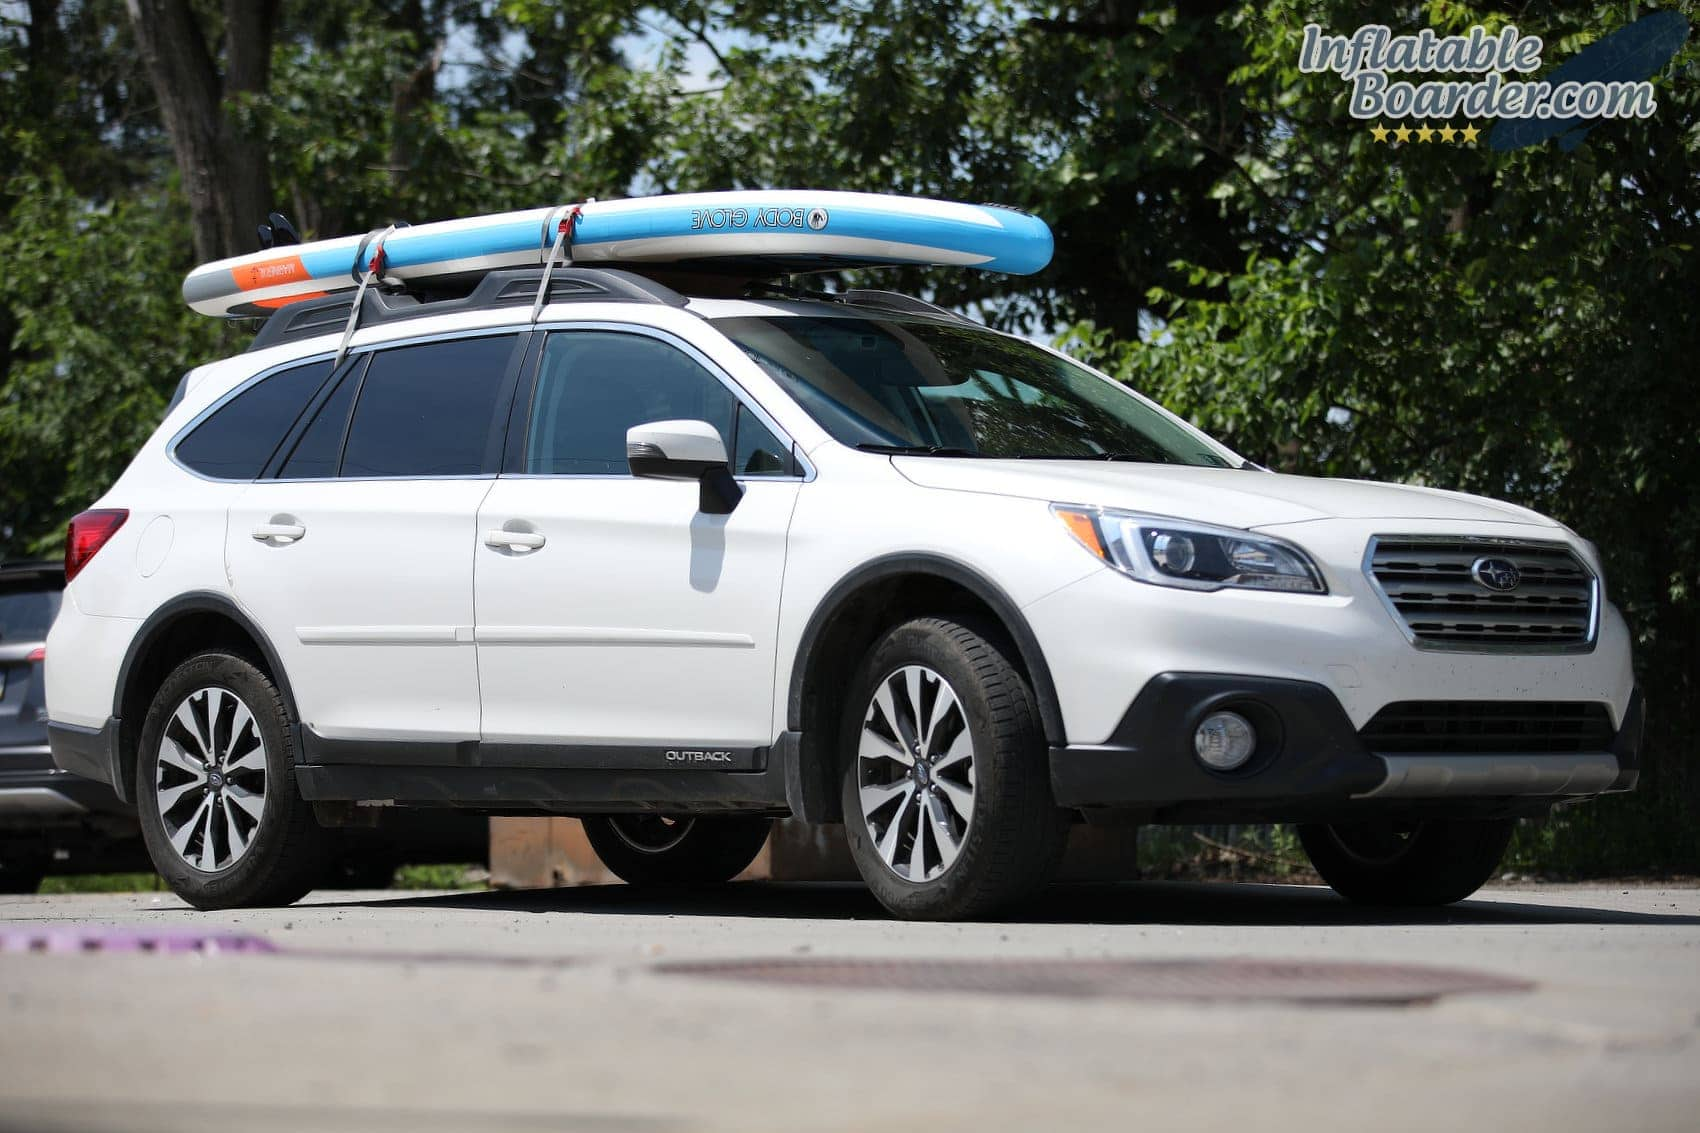 Body Glove SUP on Roof Rack